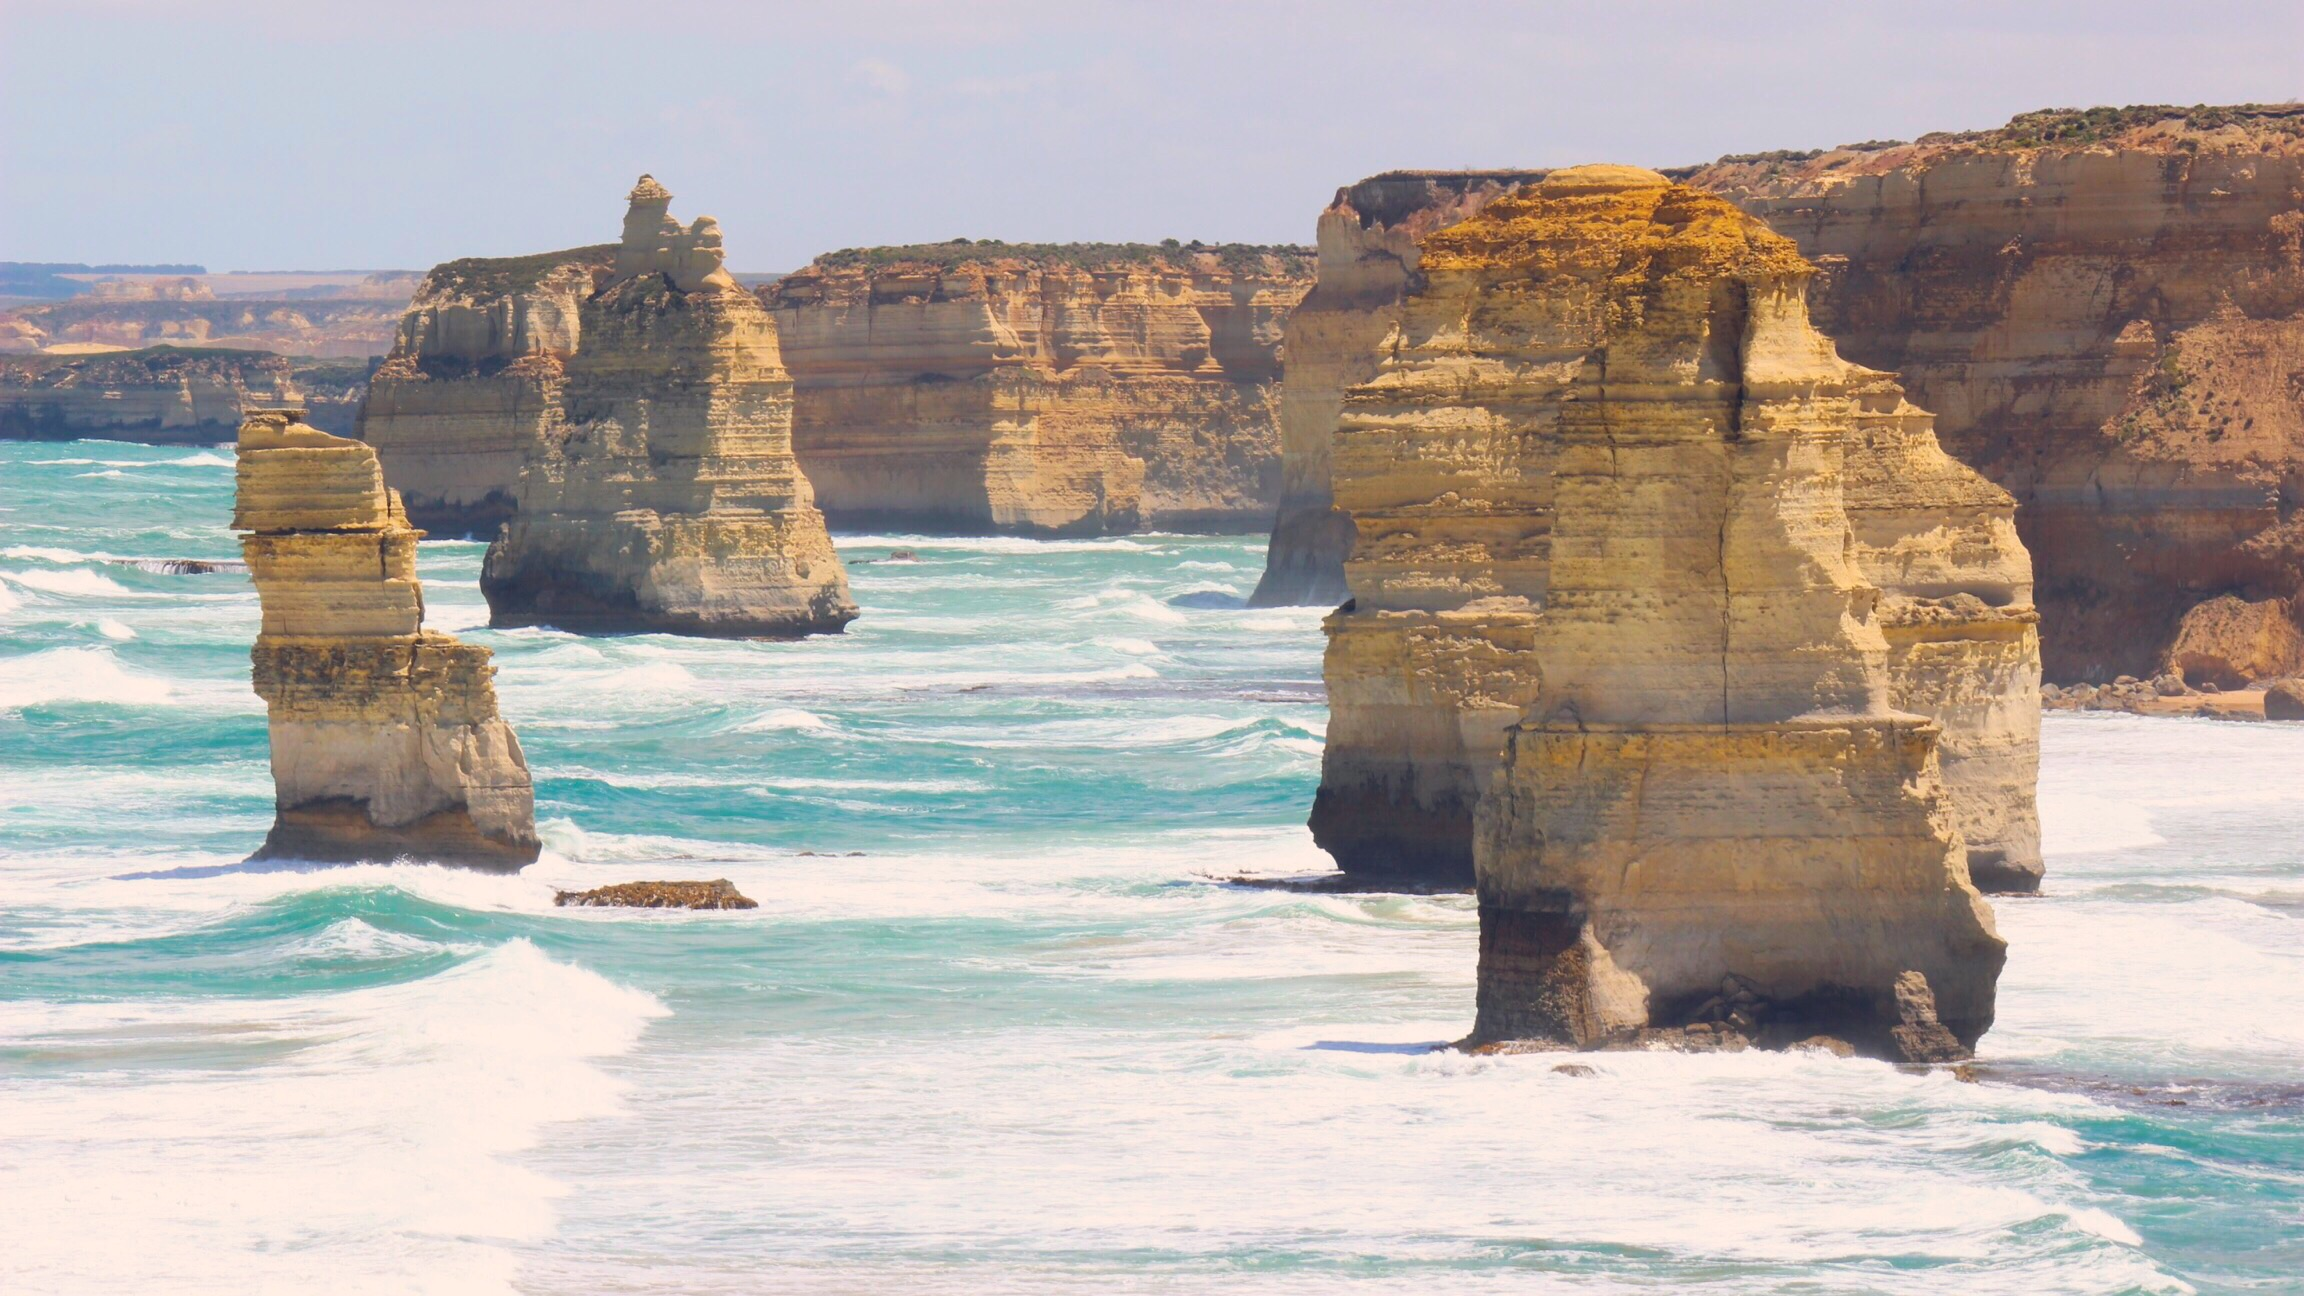 Australia's Premier Drive: The Great Ocean Road